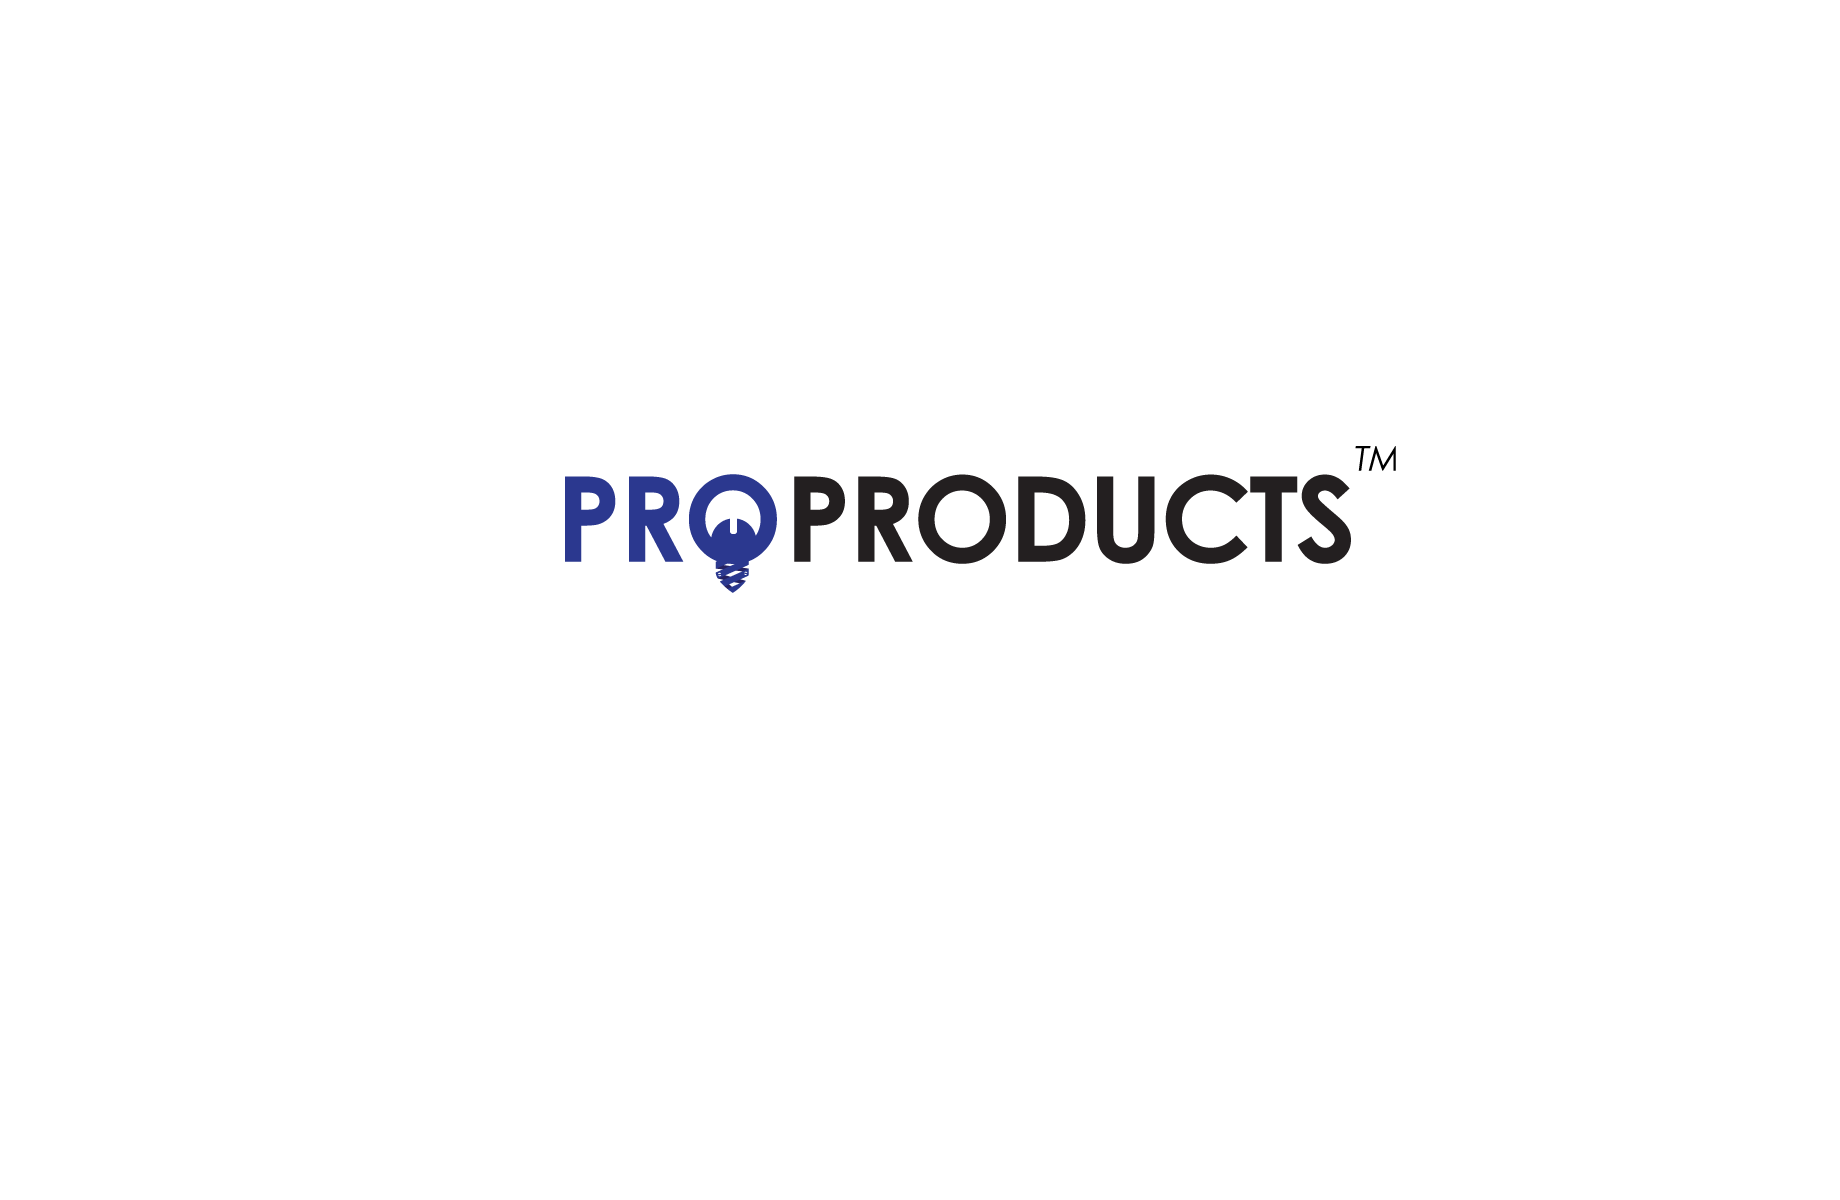 Logo Design by Jan Chua - Entry No. 17 in the Logo Design Contest Fun yet Professional Logo Design for ProProducts.